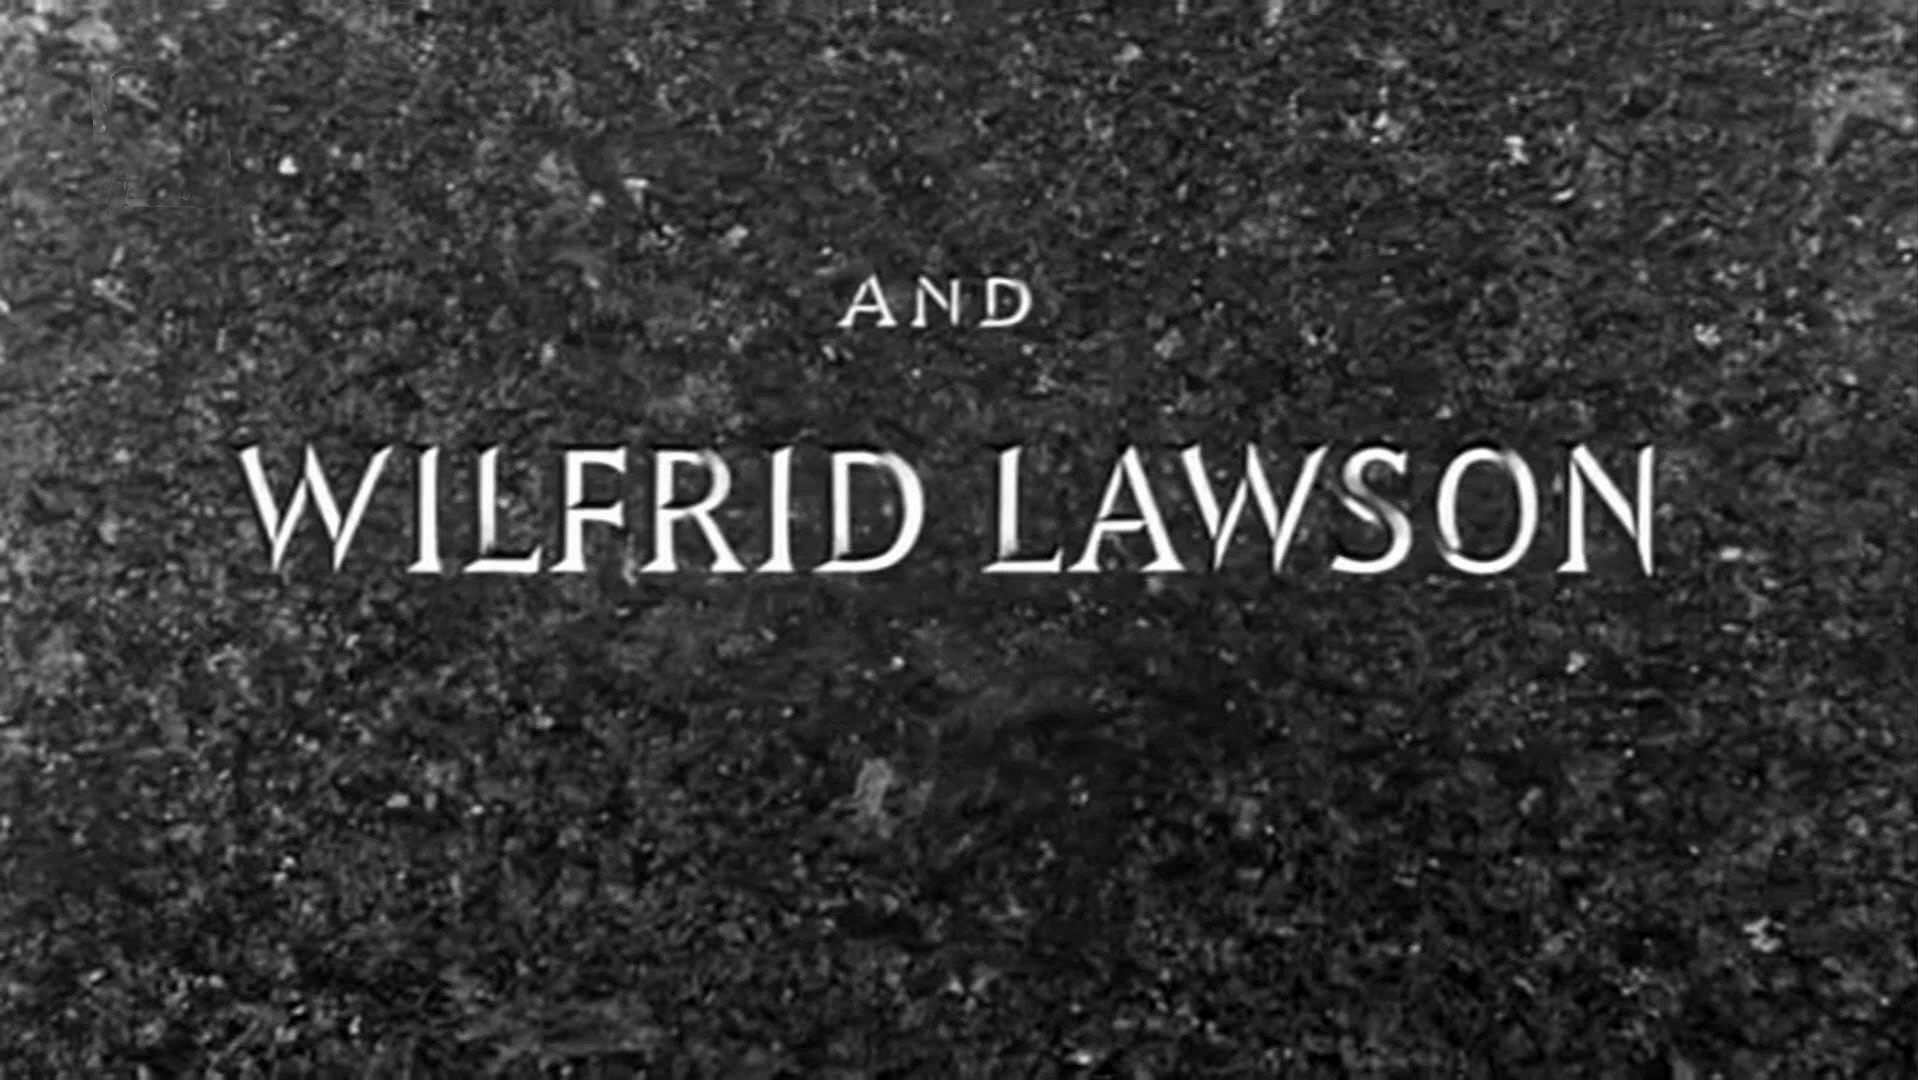 Main title from The Prisoner (1955) (5). And Wilfrid Lawson